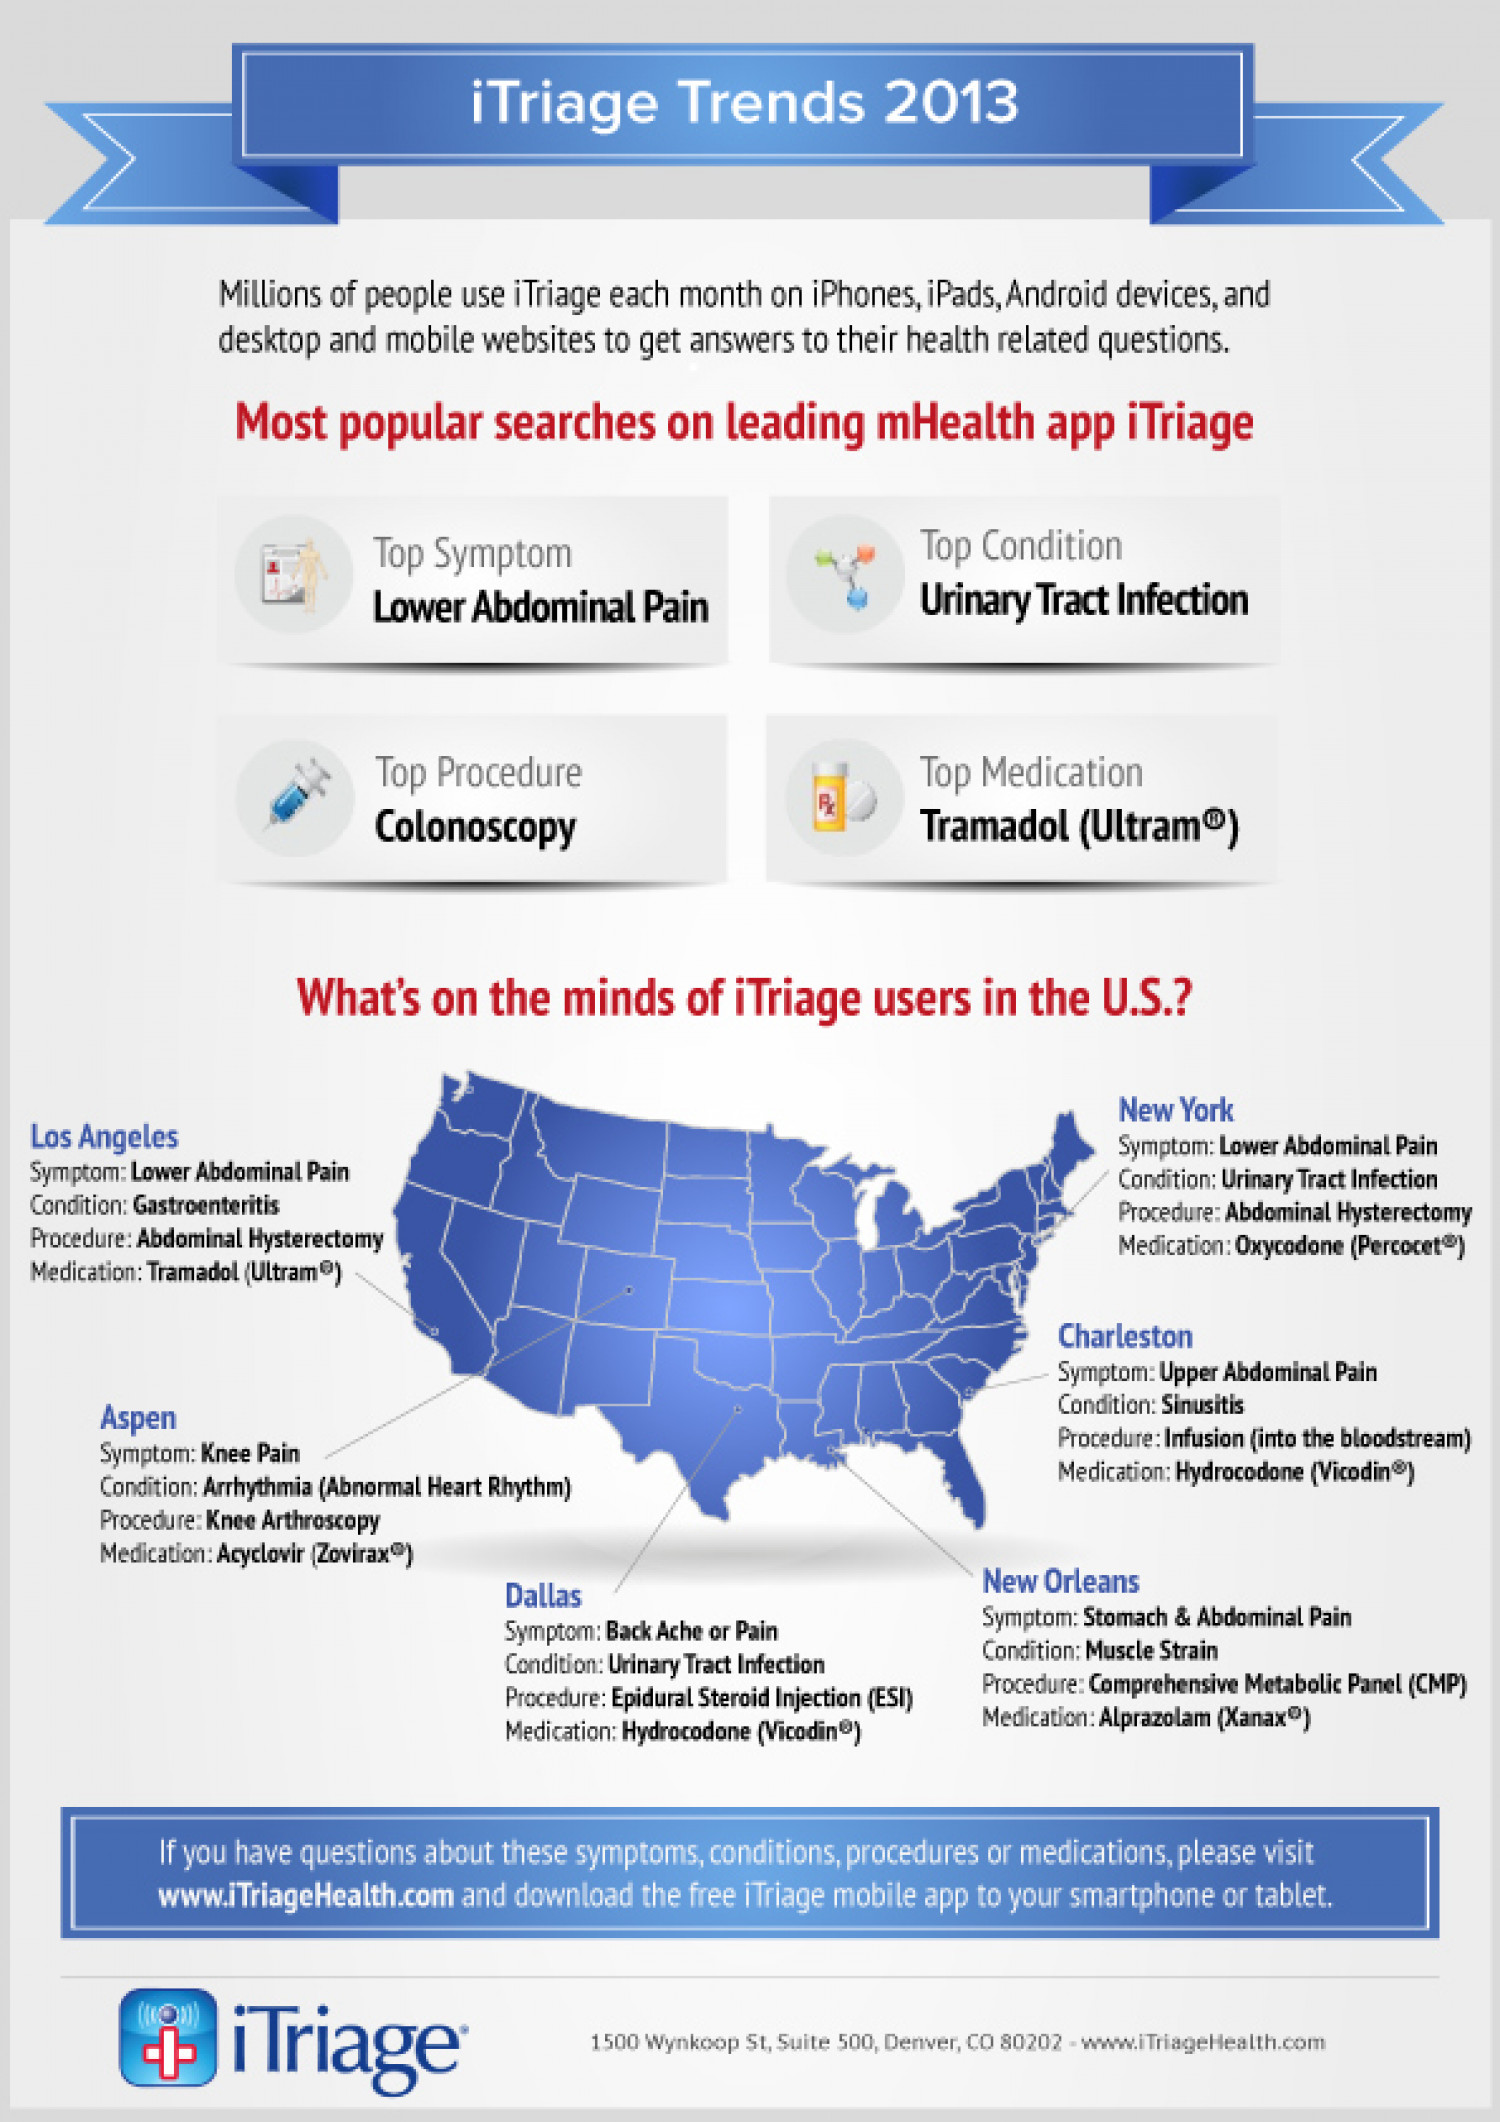 iTriage Trends 2013 Infographic